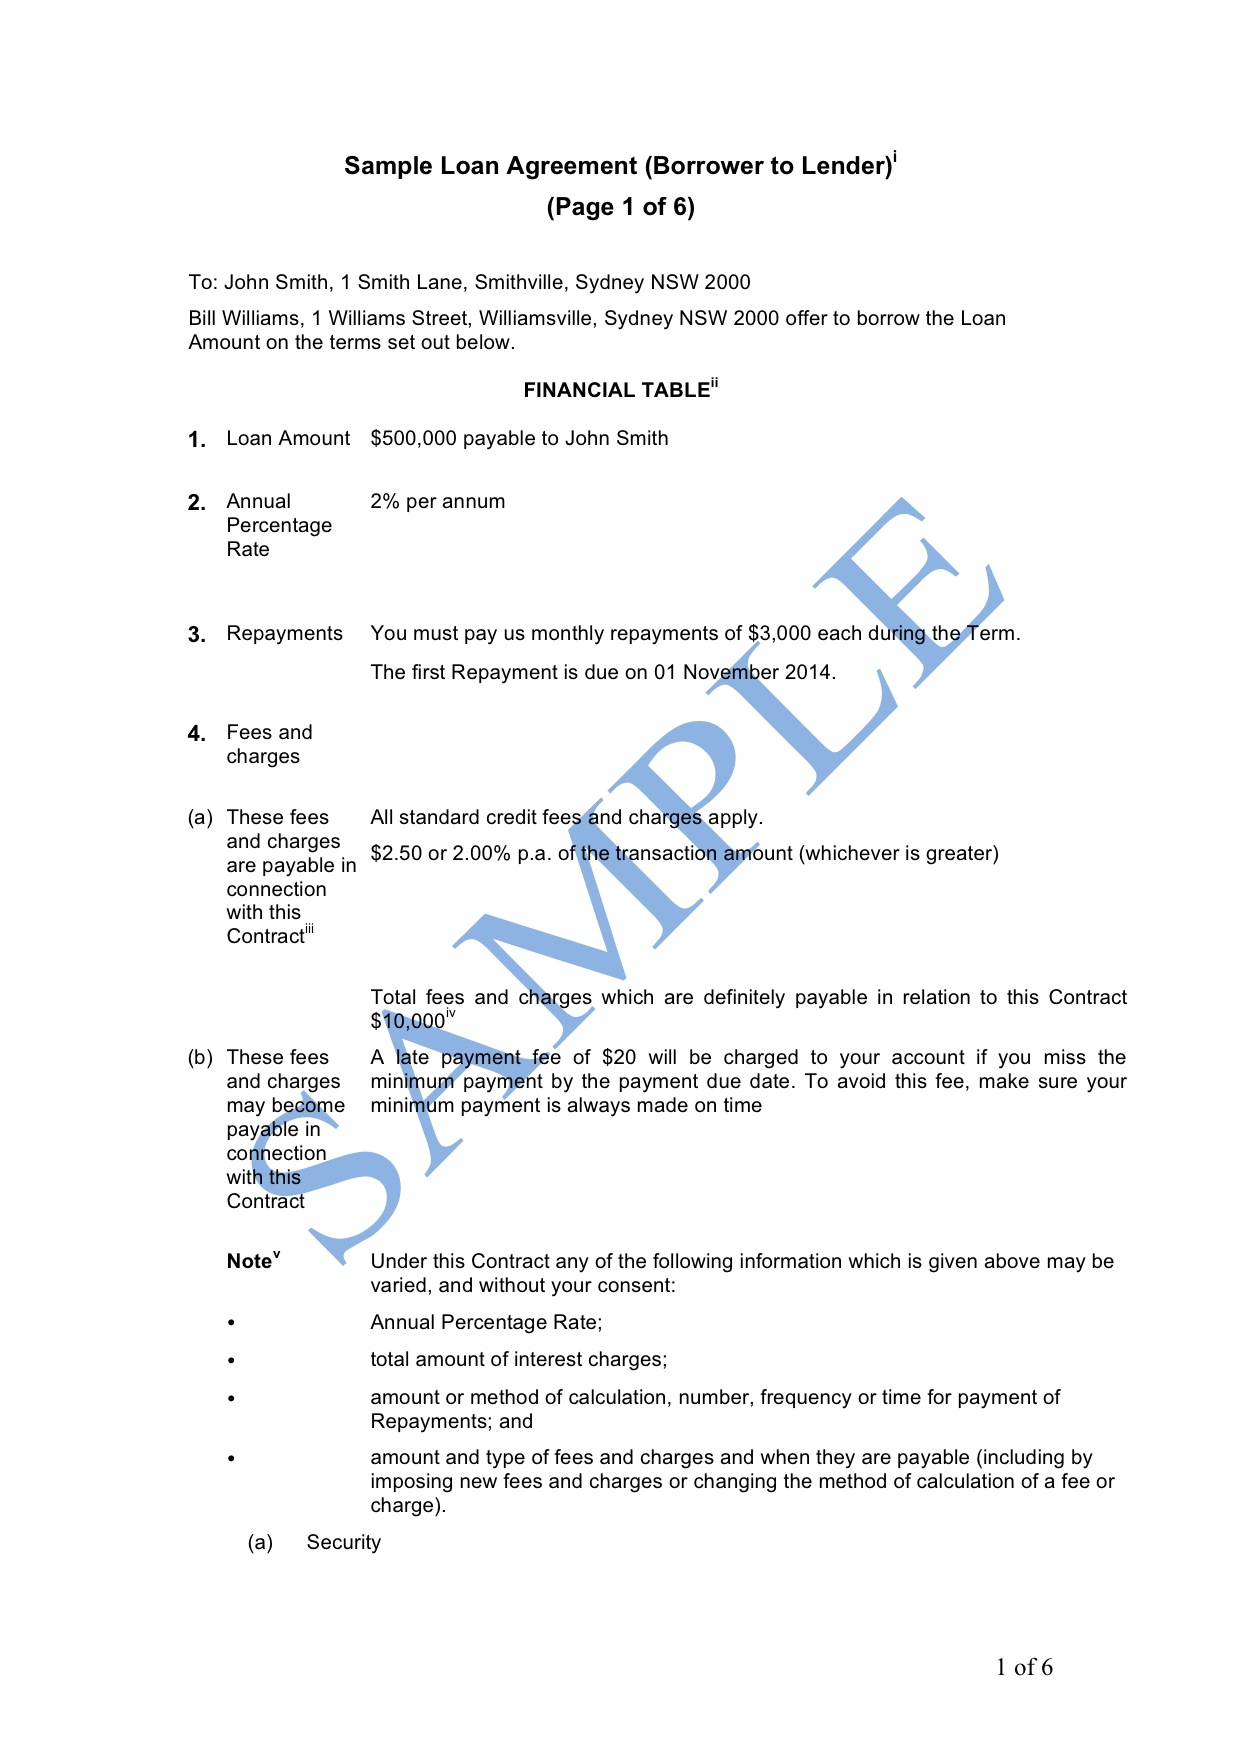 Loan Agreement Borrower To Lender Sample Lawpath